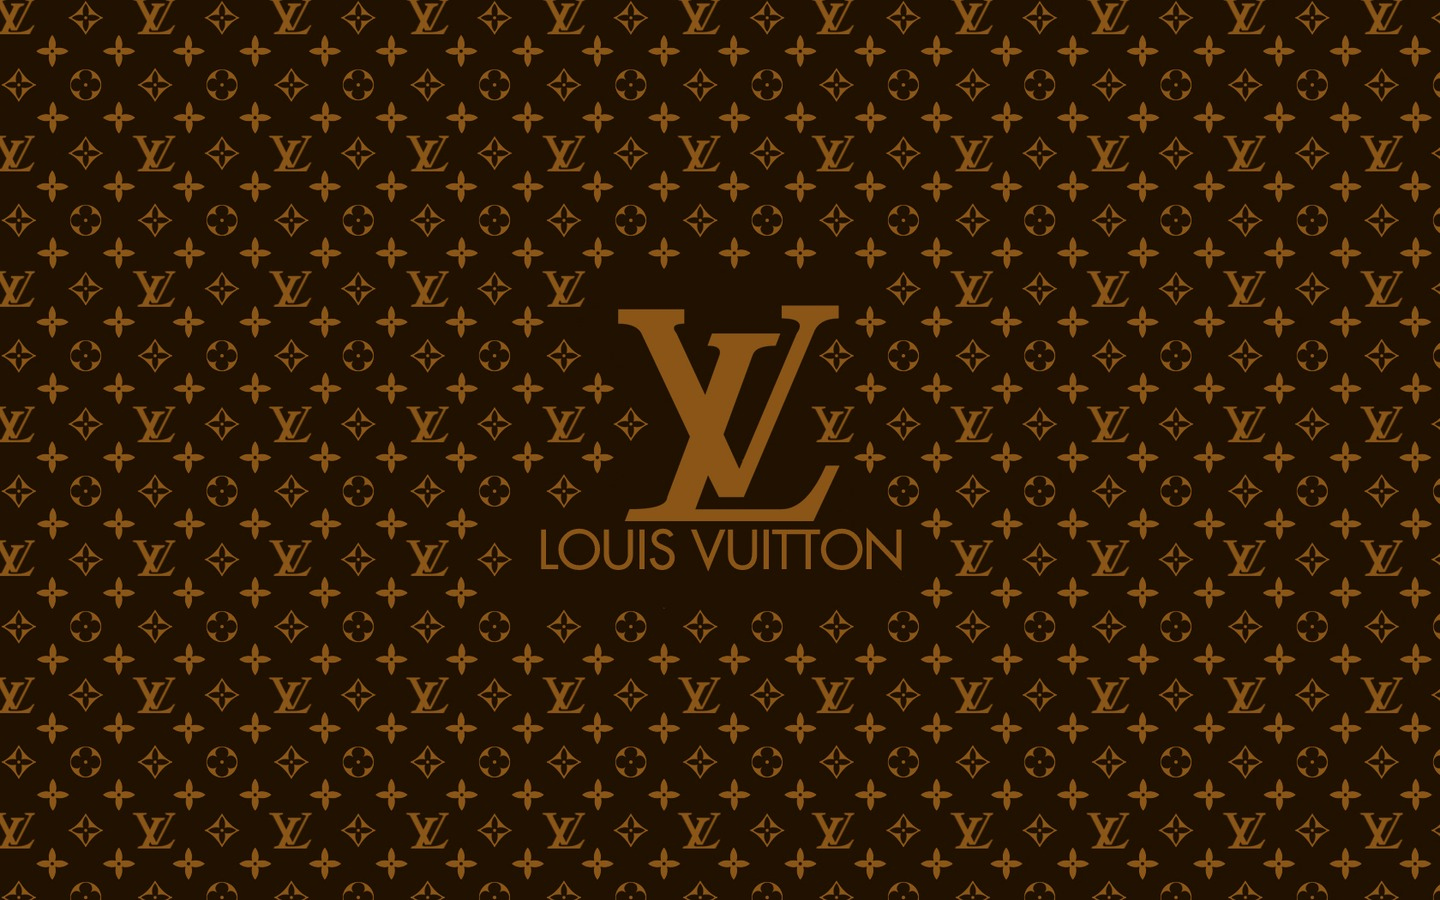 835031c6521e Louis Vuitton Free Printable Papers.